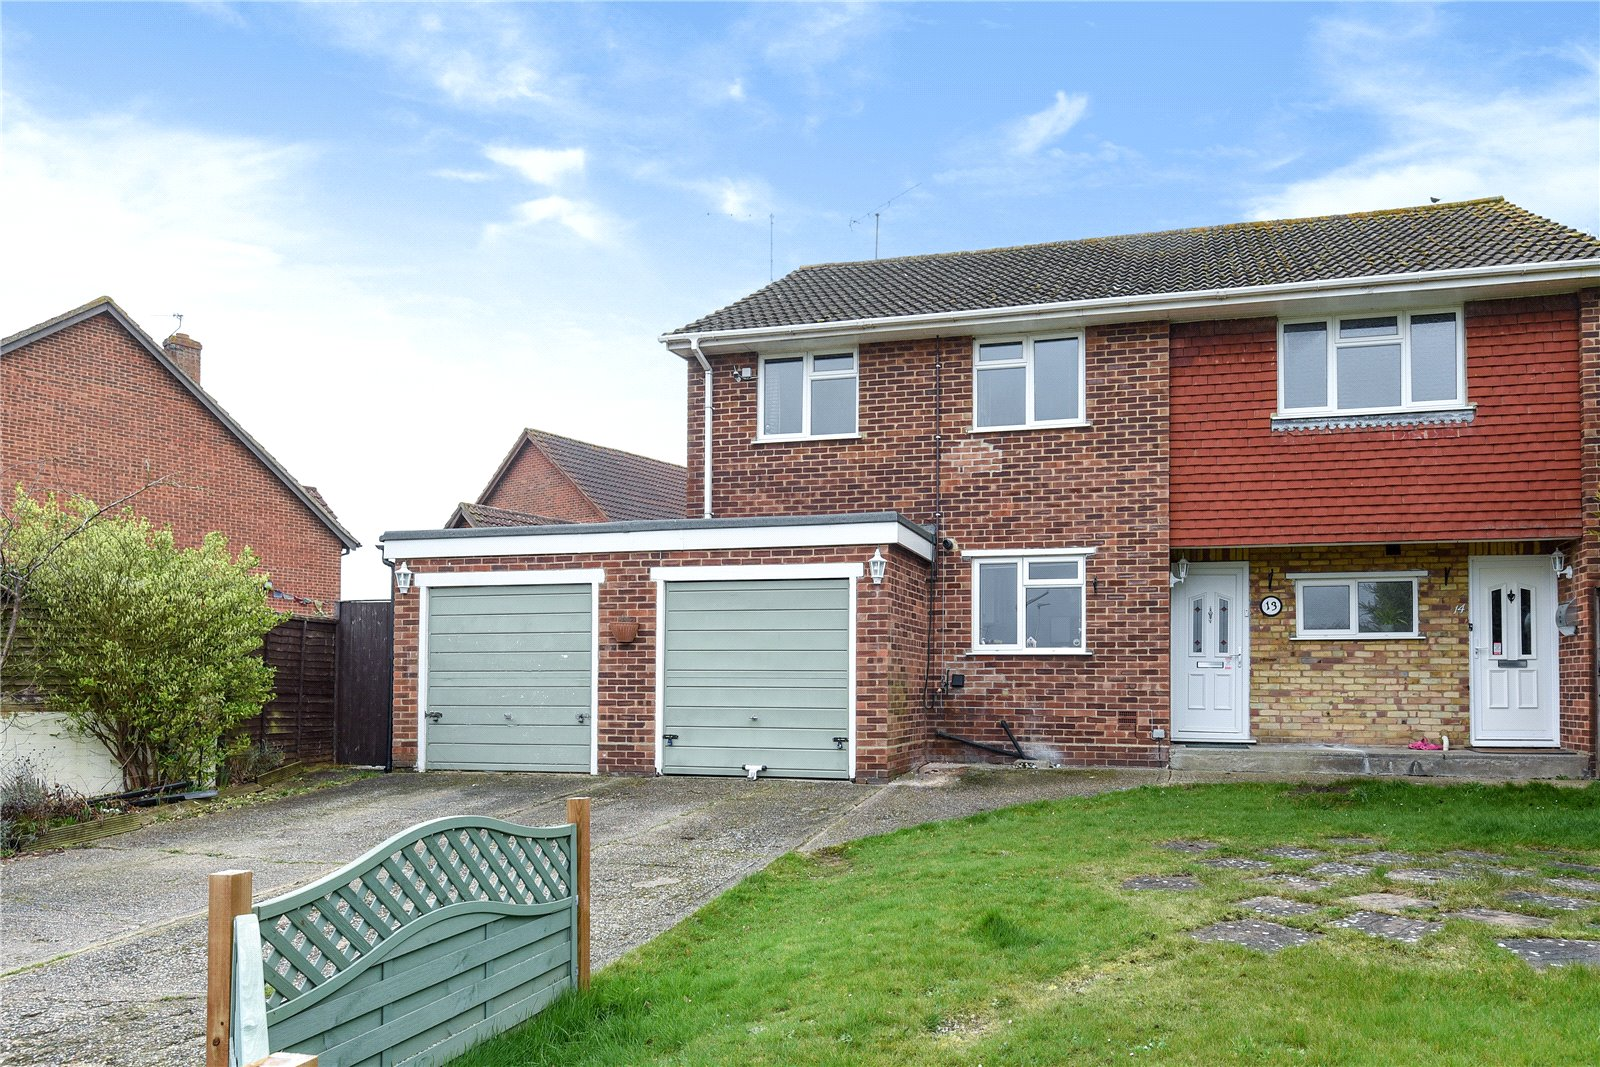 3 Bedrooms Maisonette Flat for sale in Halpin Close, Calcot, Reading, Berkshire, RG31